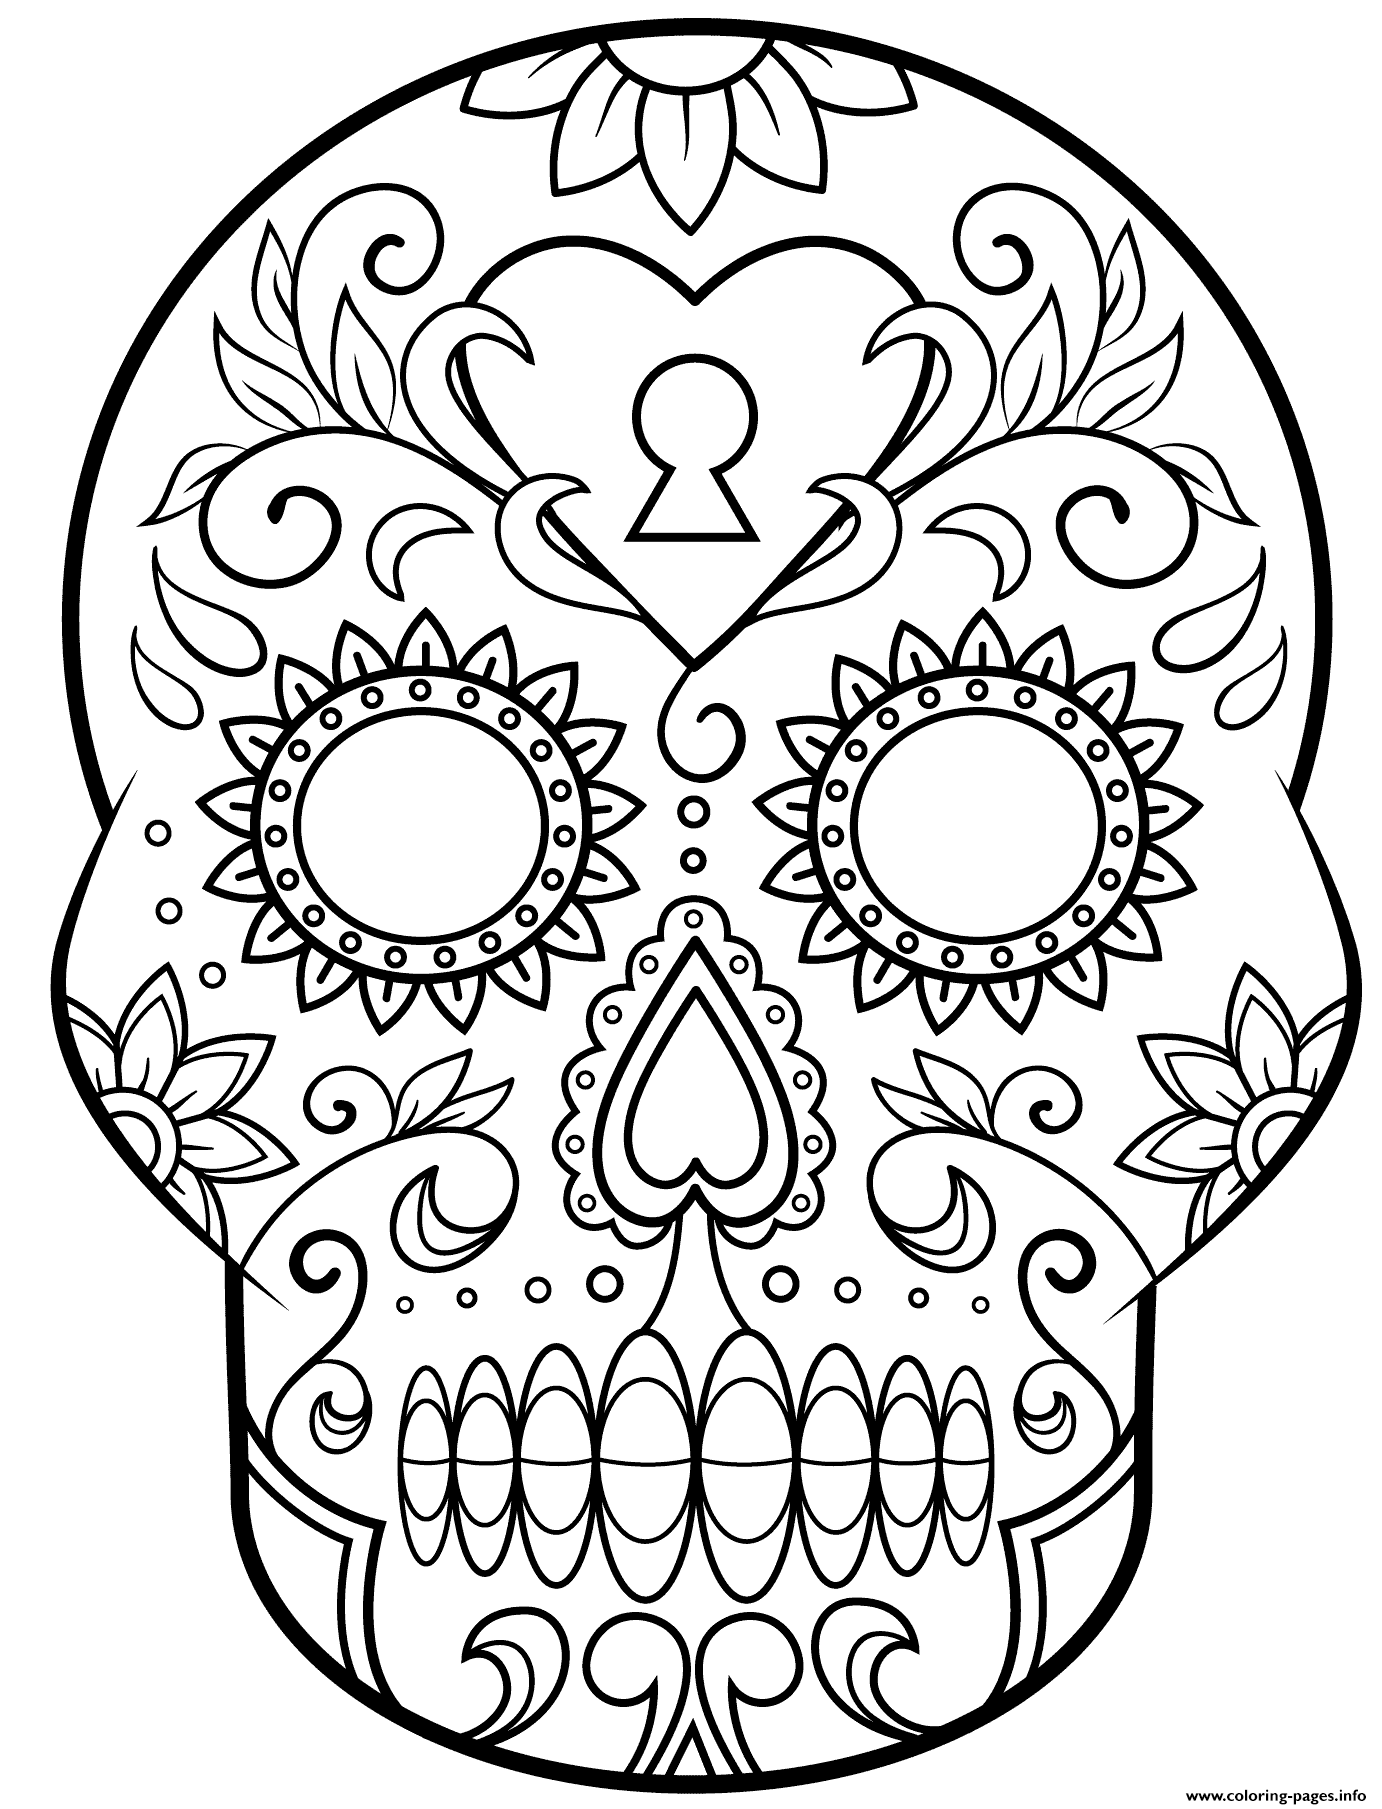 Day of the dead sugar skull calavera coloring pages printable Coloring book day